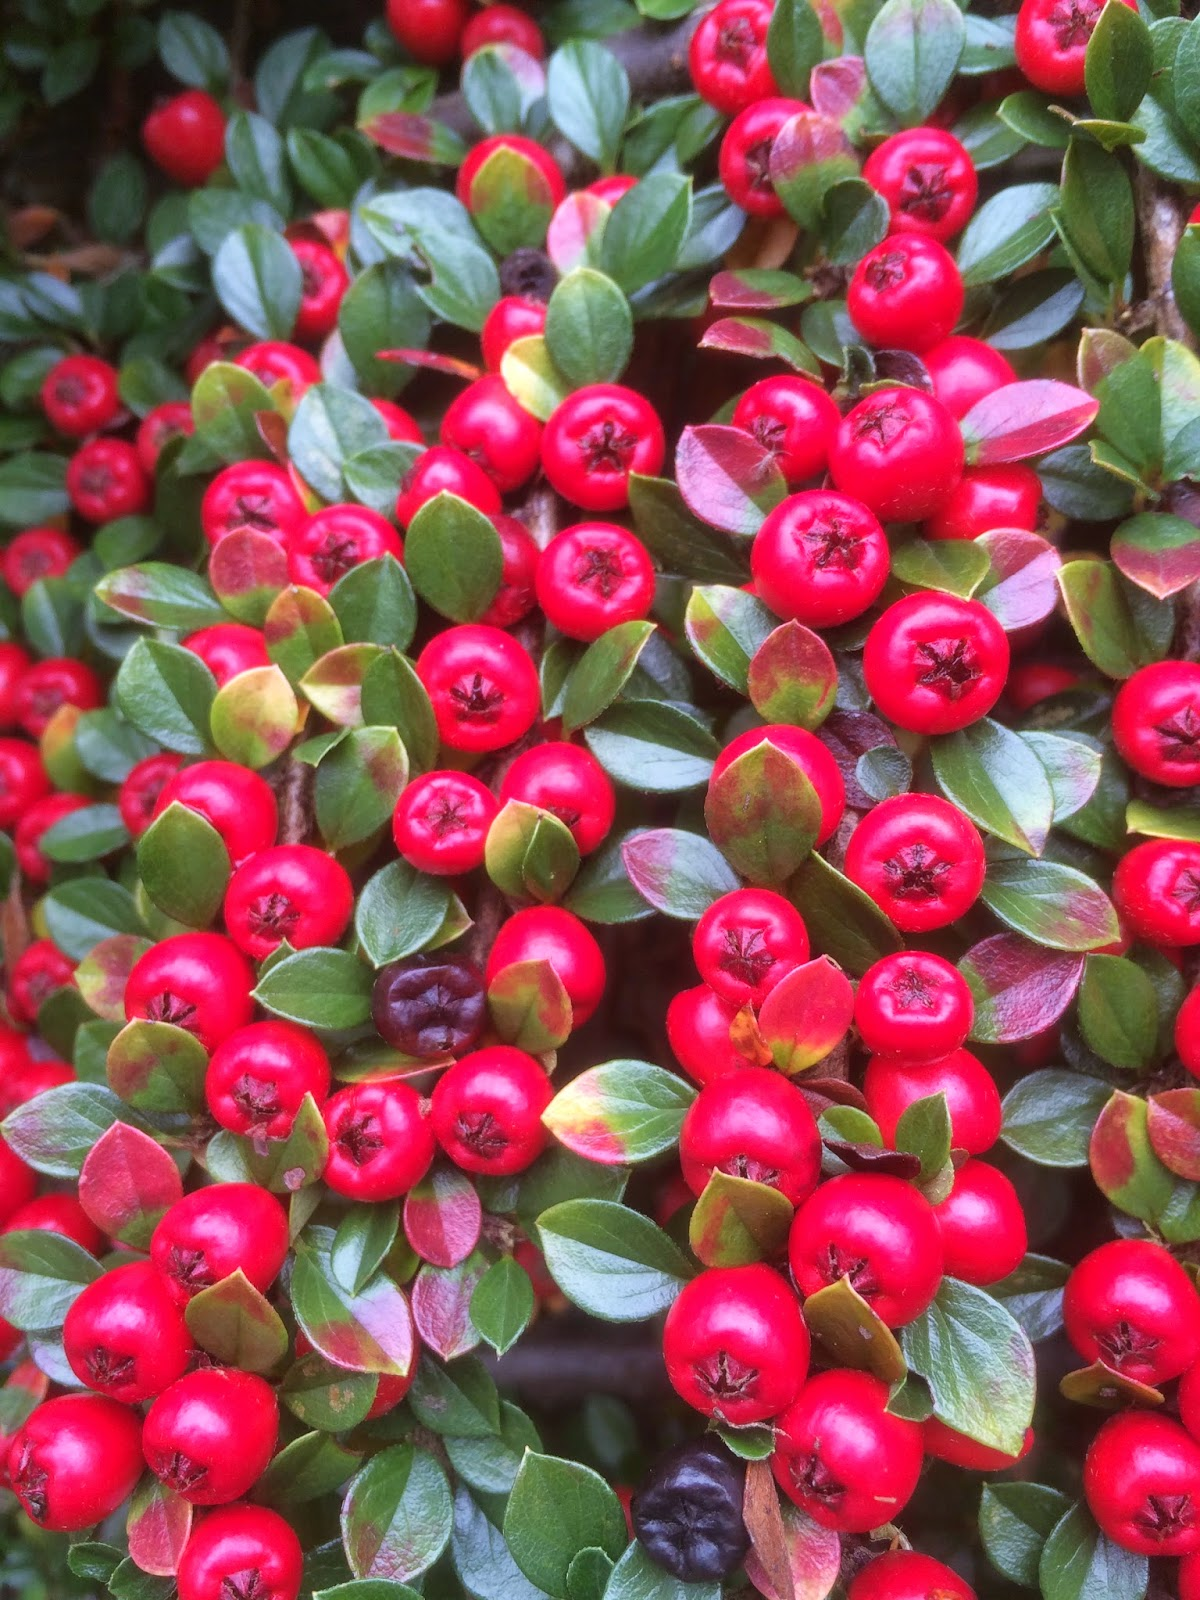 Cotoneaster berries in the Tuckshop garden